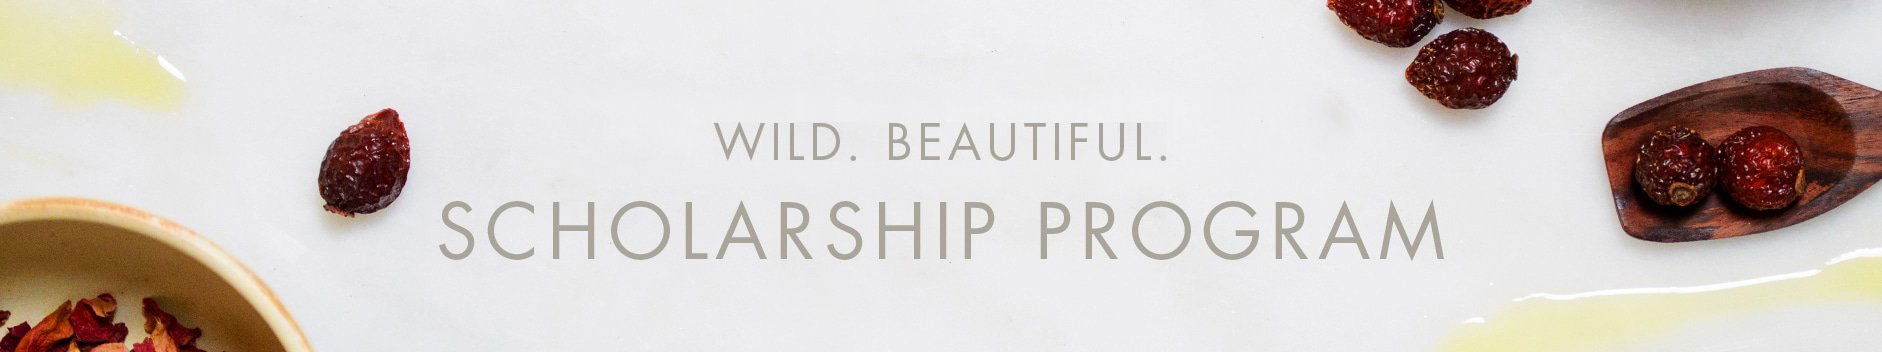 honest-wild-beautiful-scholarship-program